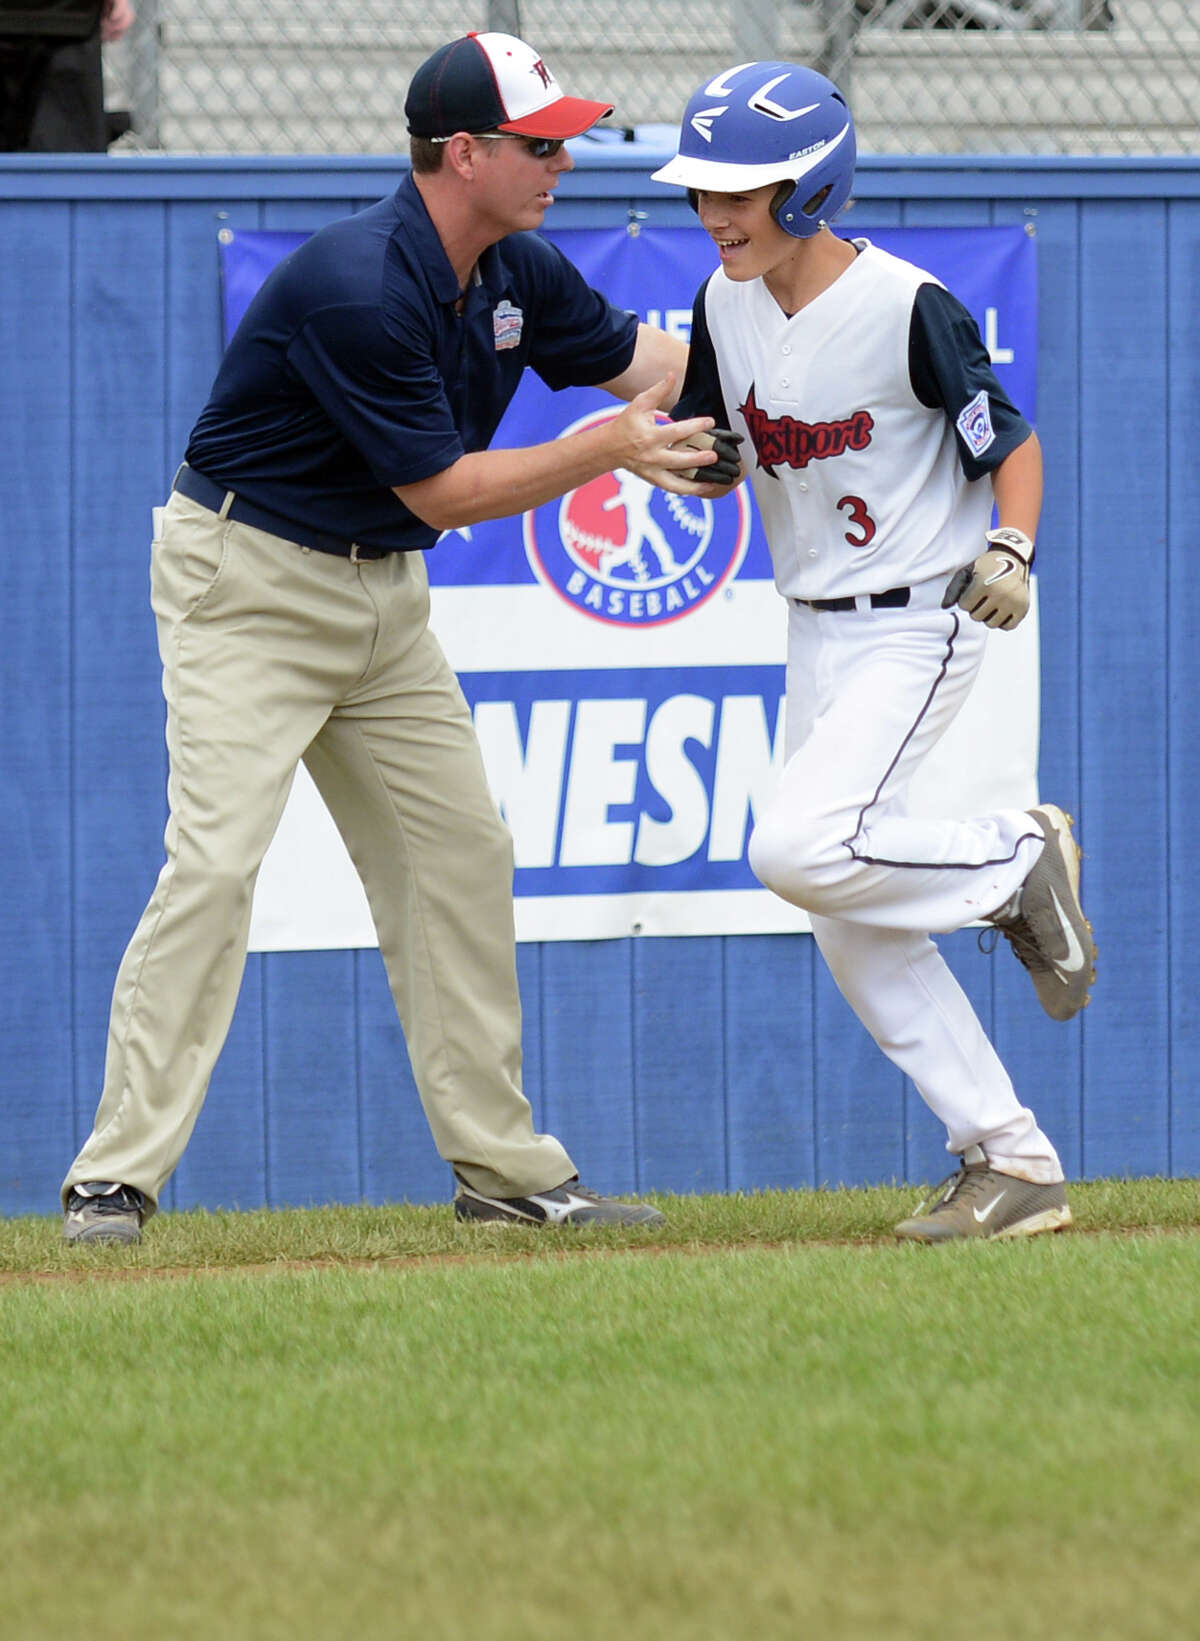 Westport coach Tim Rogers congratulates player Max Popken as he runs home after hitting a home run in the first inning of the Little League Baseball Eastern Regional Tournament game against Sacro/Maremont, of Maine, at Breen Field in Bristol, Conn. Thursday, August 8, 2013.